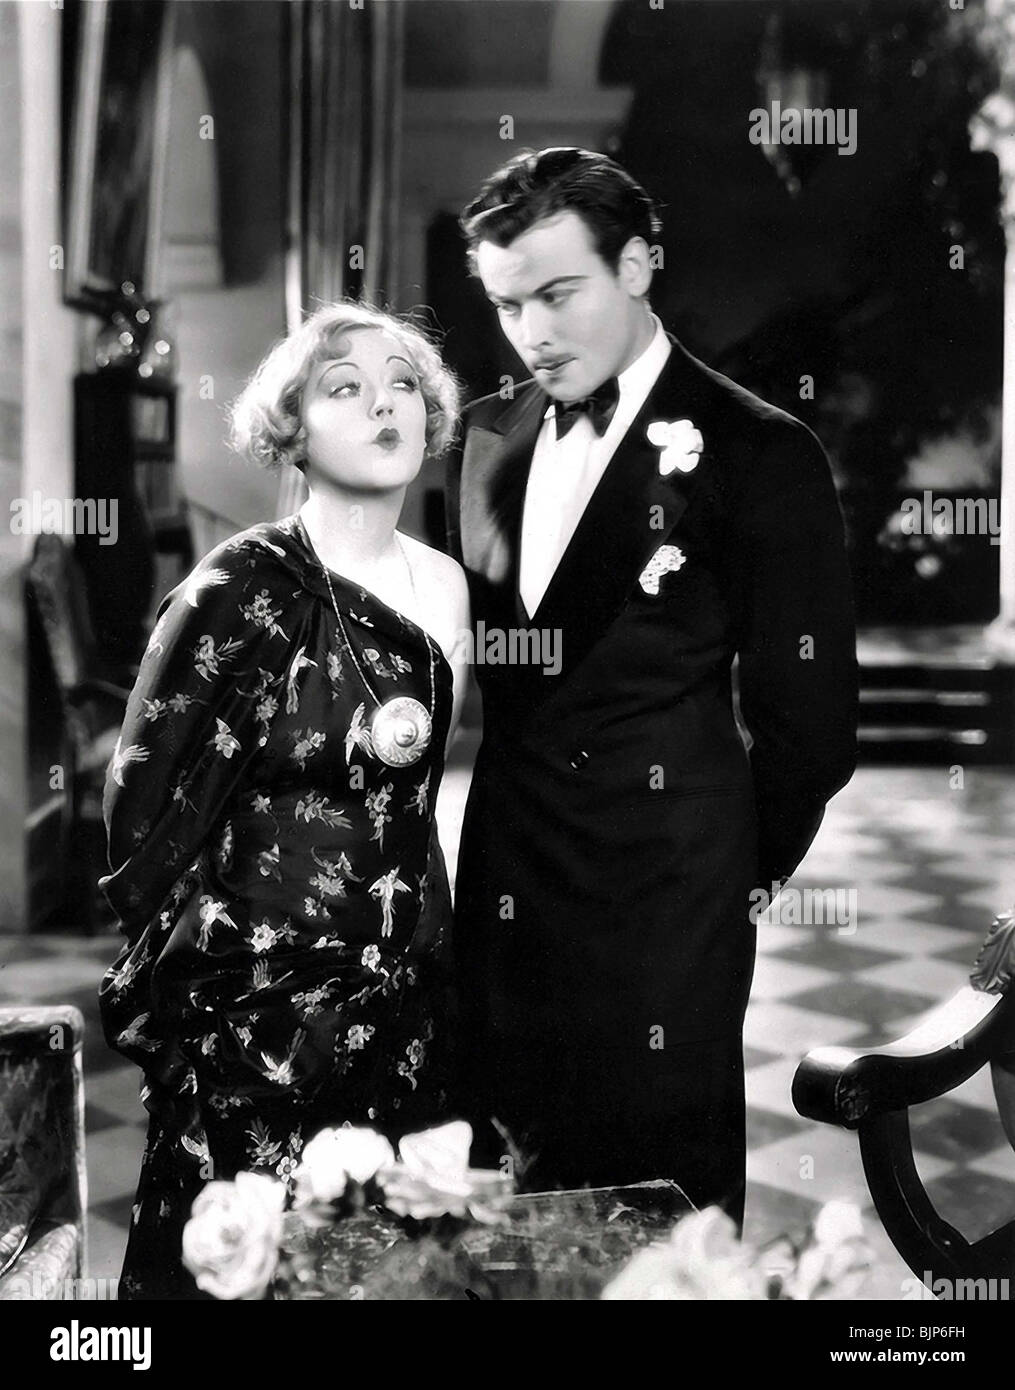 THE CARDBOARD LOVER (1928) MARION DAVIES, NILS ASTHER ROBERT Z. LEONARD (DIR) TCAL 001 - Stock Image